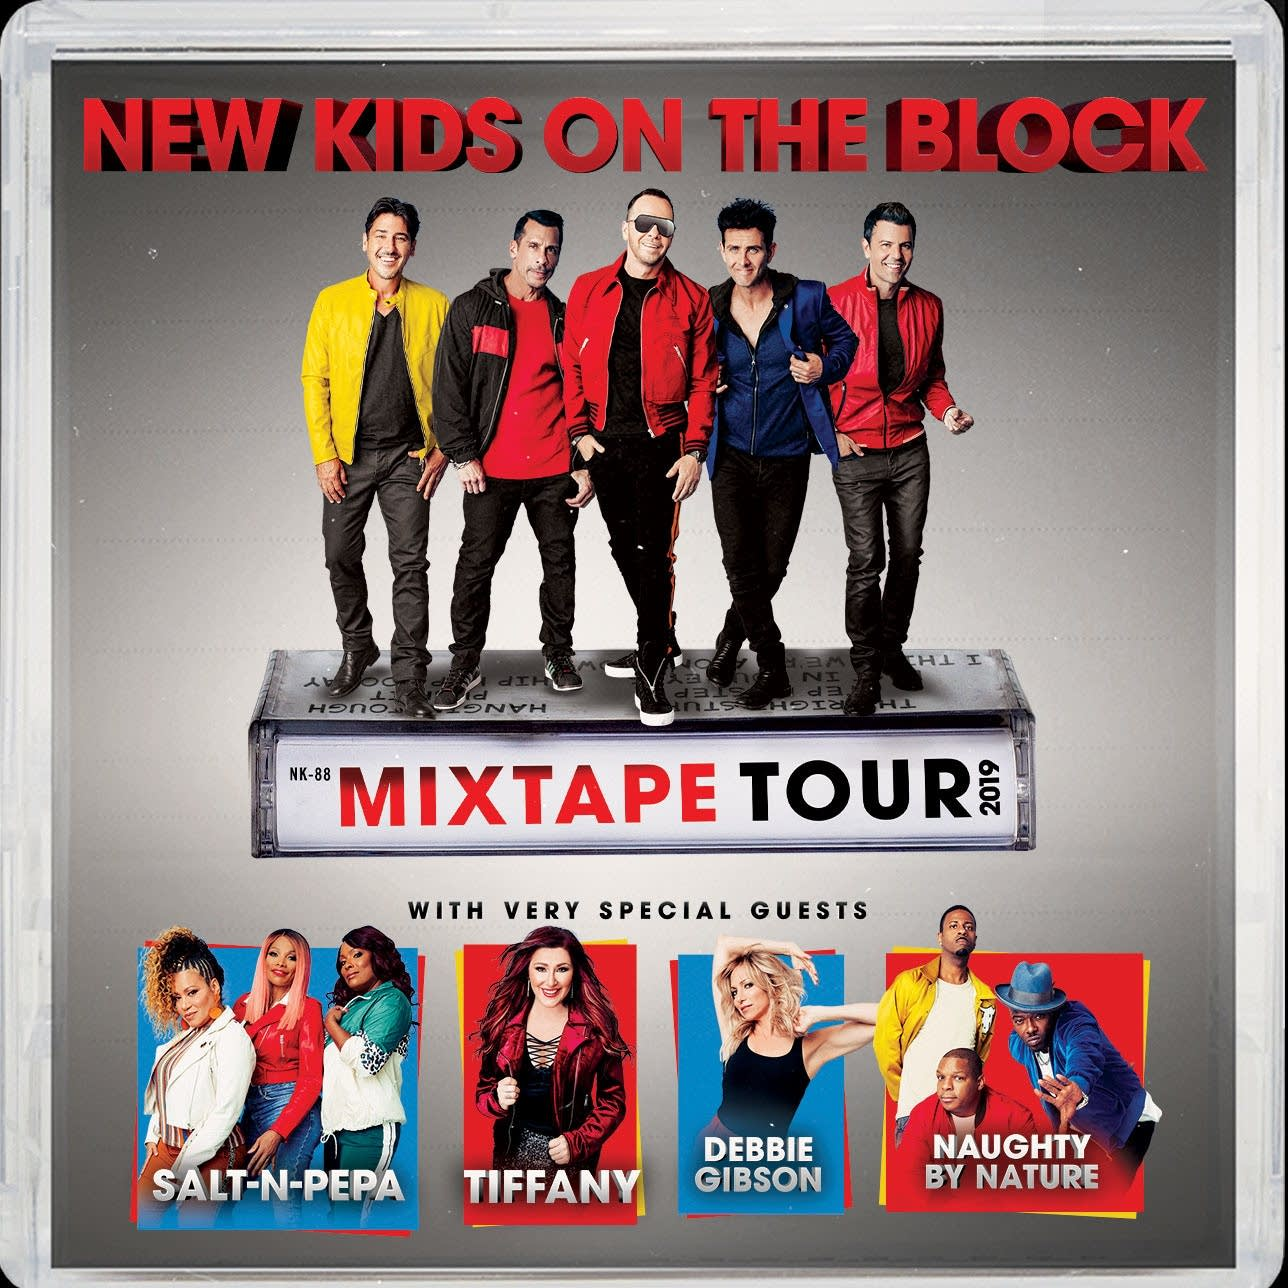 New Kids on the Block Mixtape Tour Poster